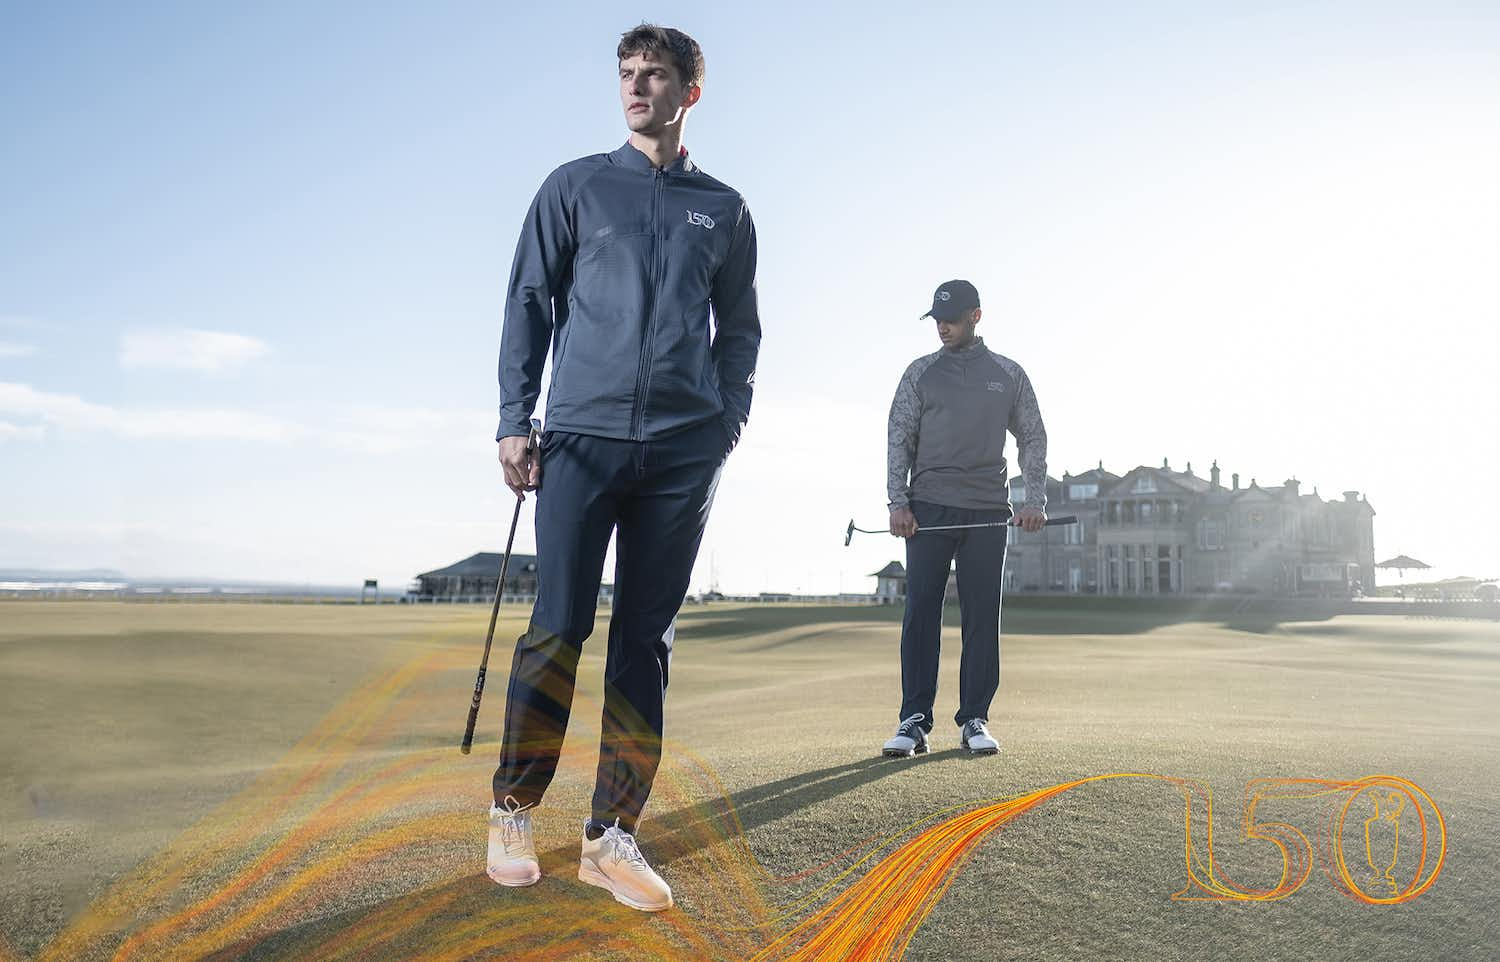 The All New Commemorative 150th Open Logo Collection